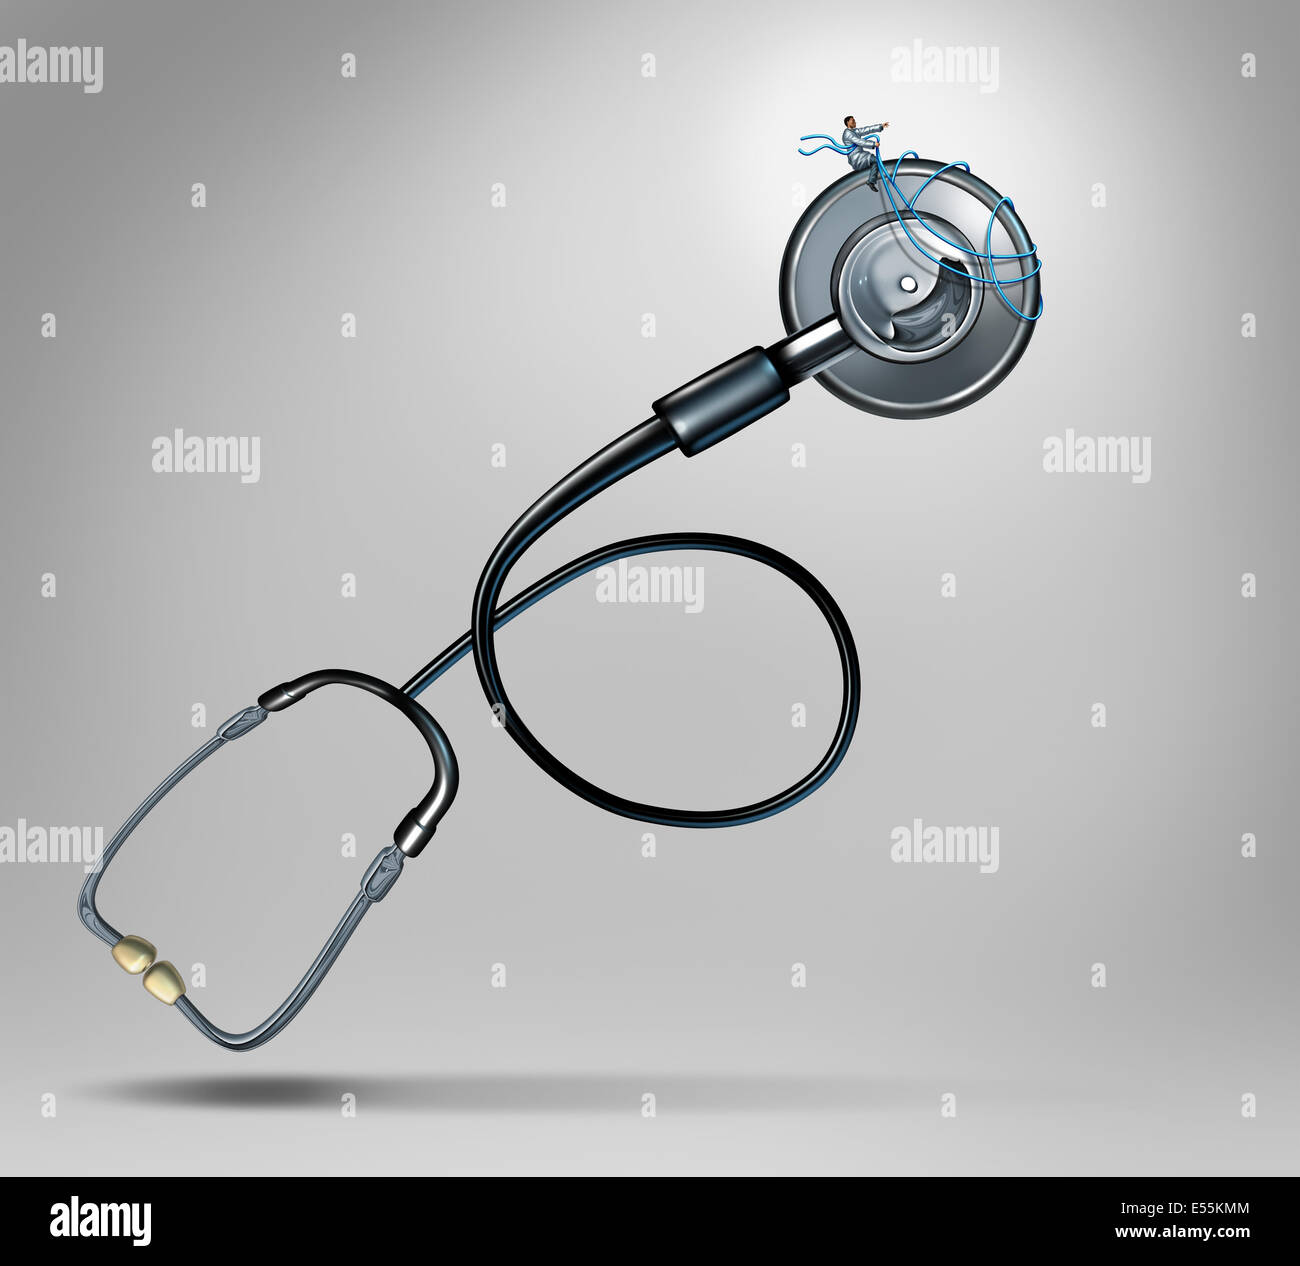 Medical guidance and patient care concept as a doctor piloting a giant stethoscope with a harness as a metaphor - Stock Image